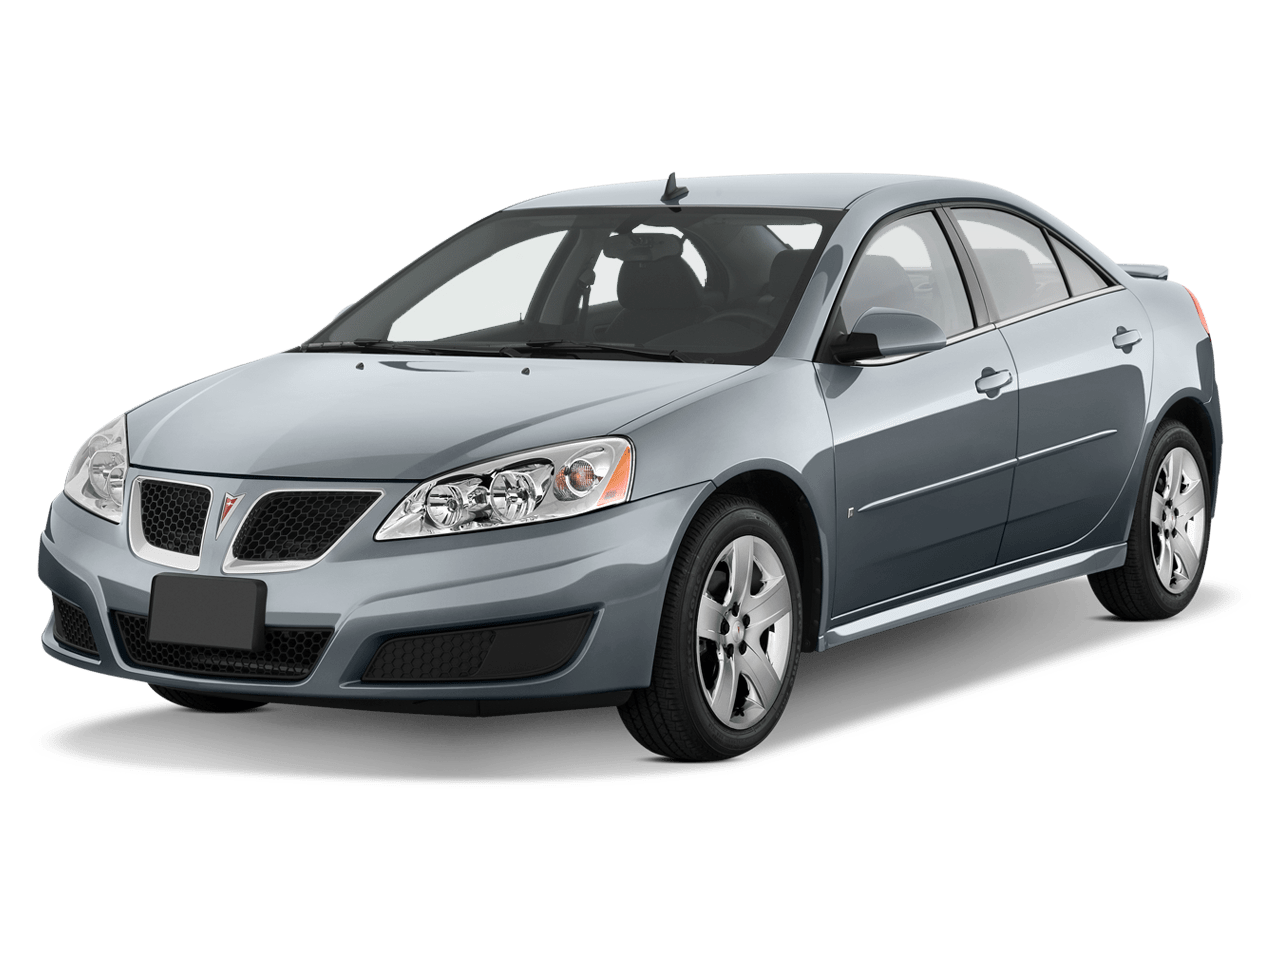 small resolution of 2009 pontiac g6 reviews and rating motortrend pontiac g6 convertible power window wire diagrams